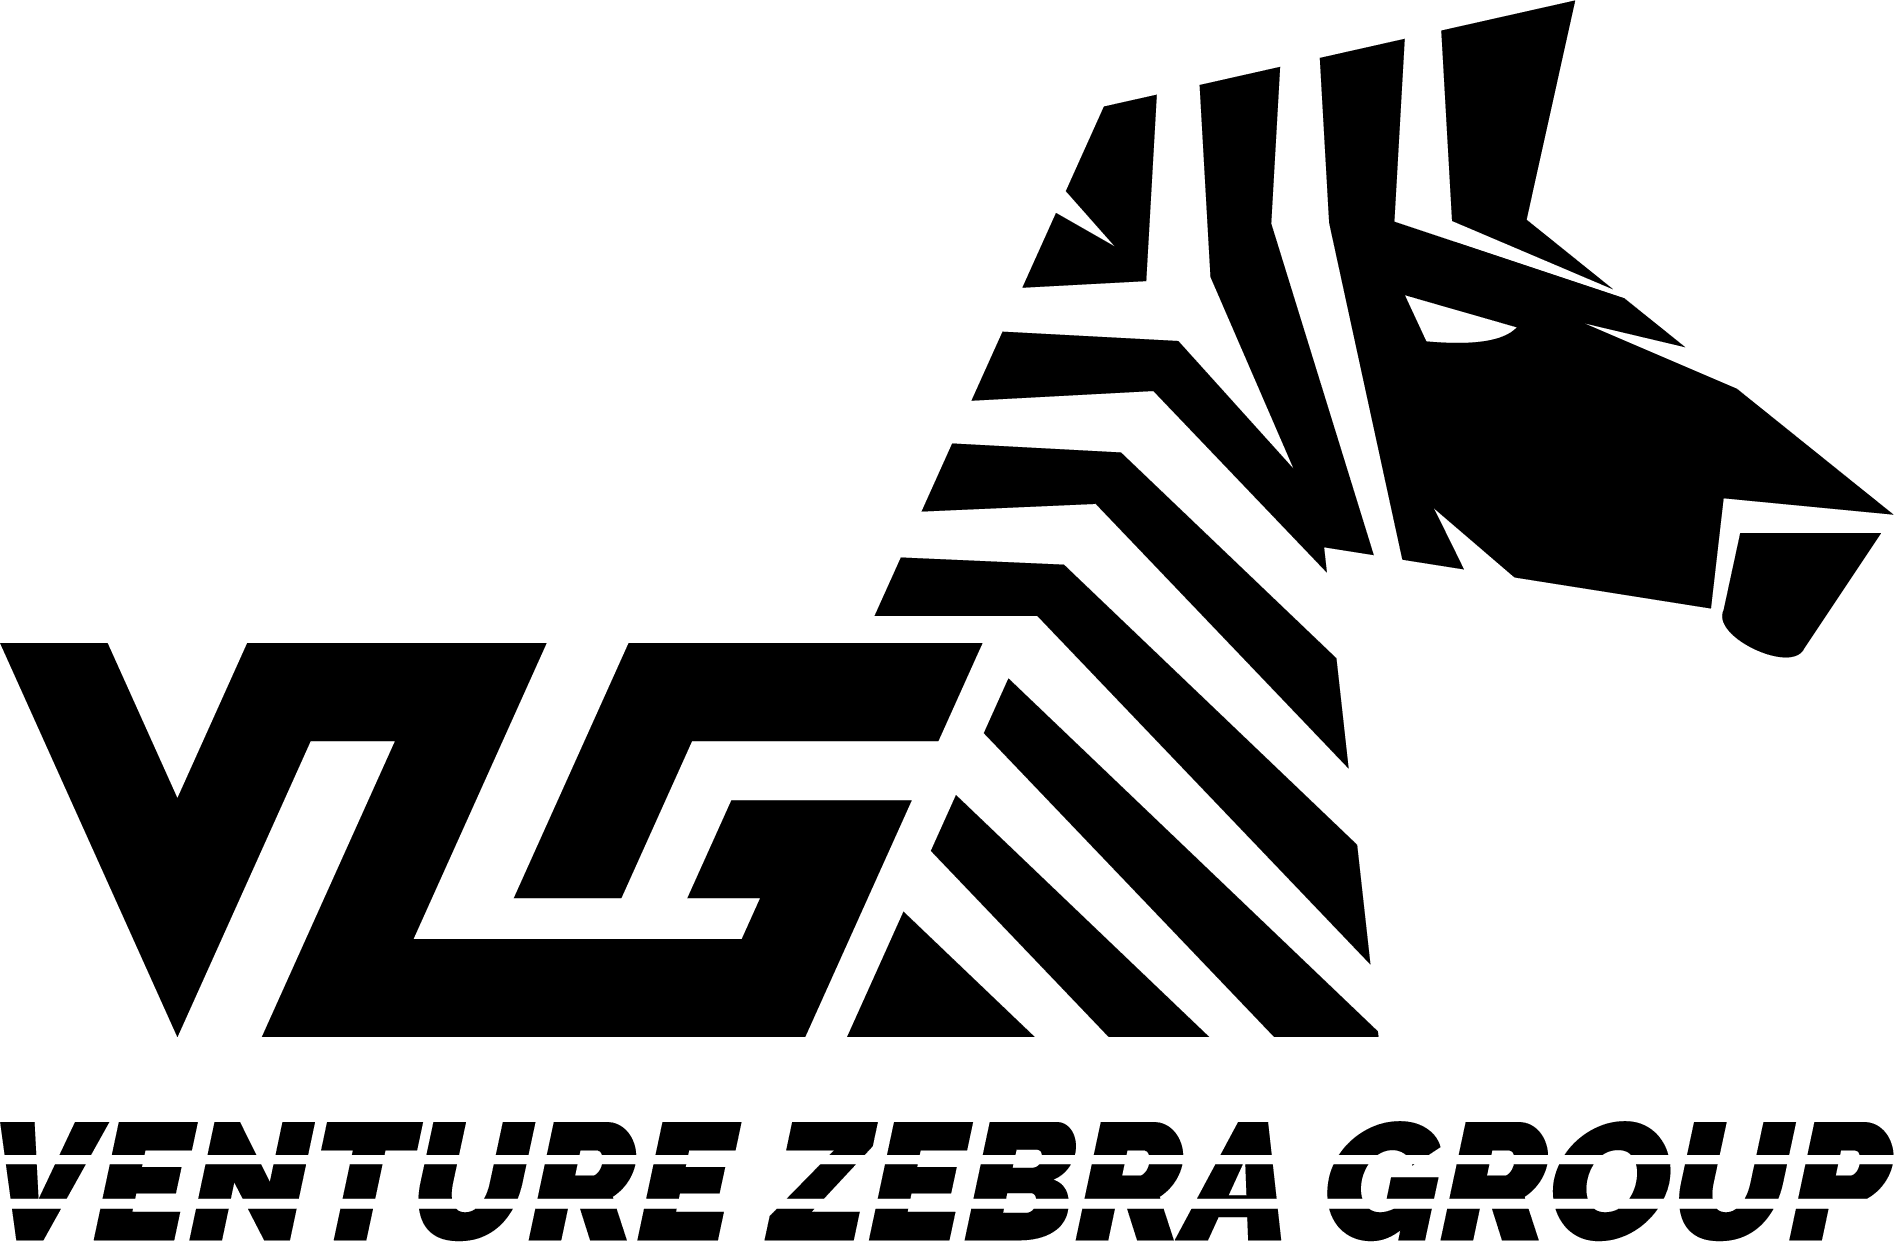 Venture Zebra Group